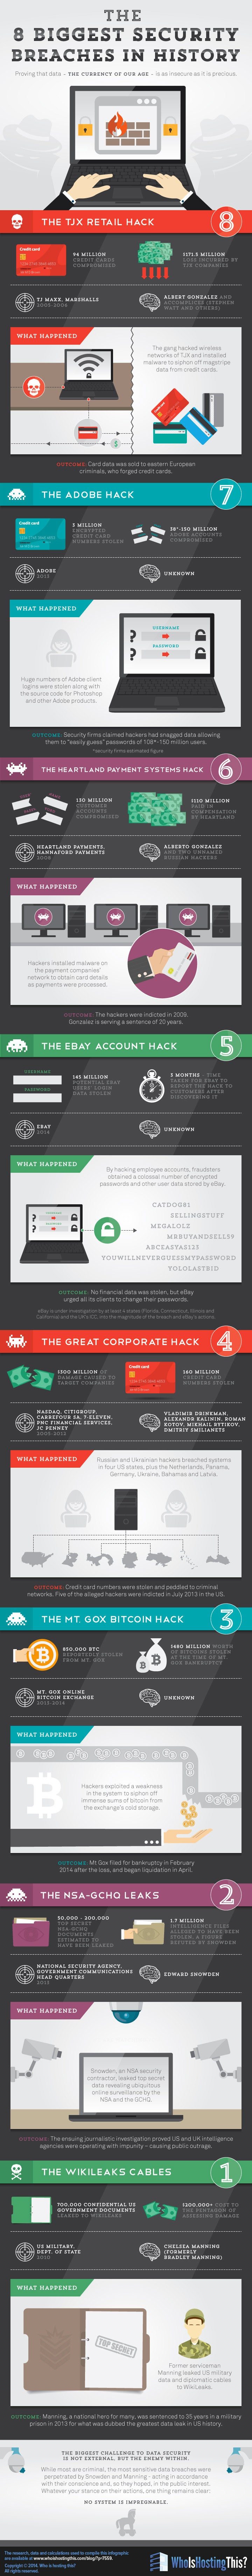 8 of the Biggest Data Breaches Ever and How They Happened (Infographic)